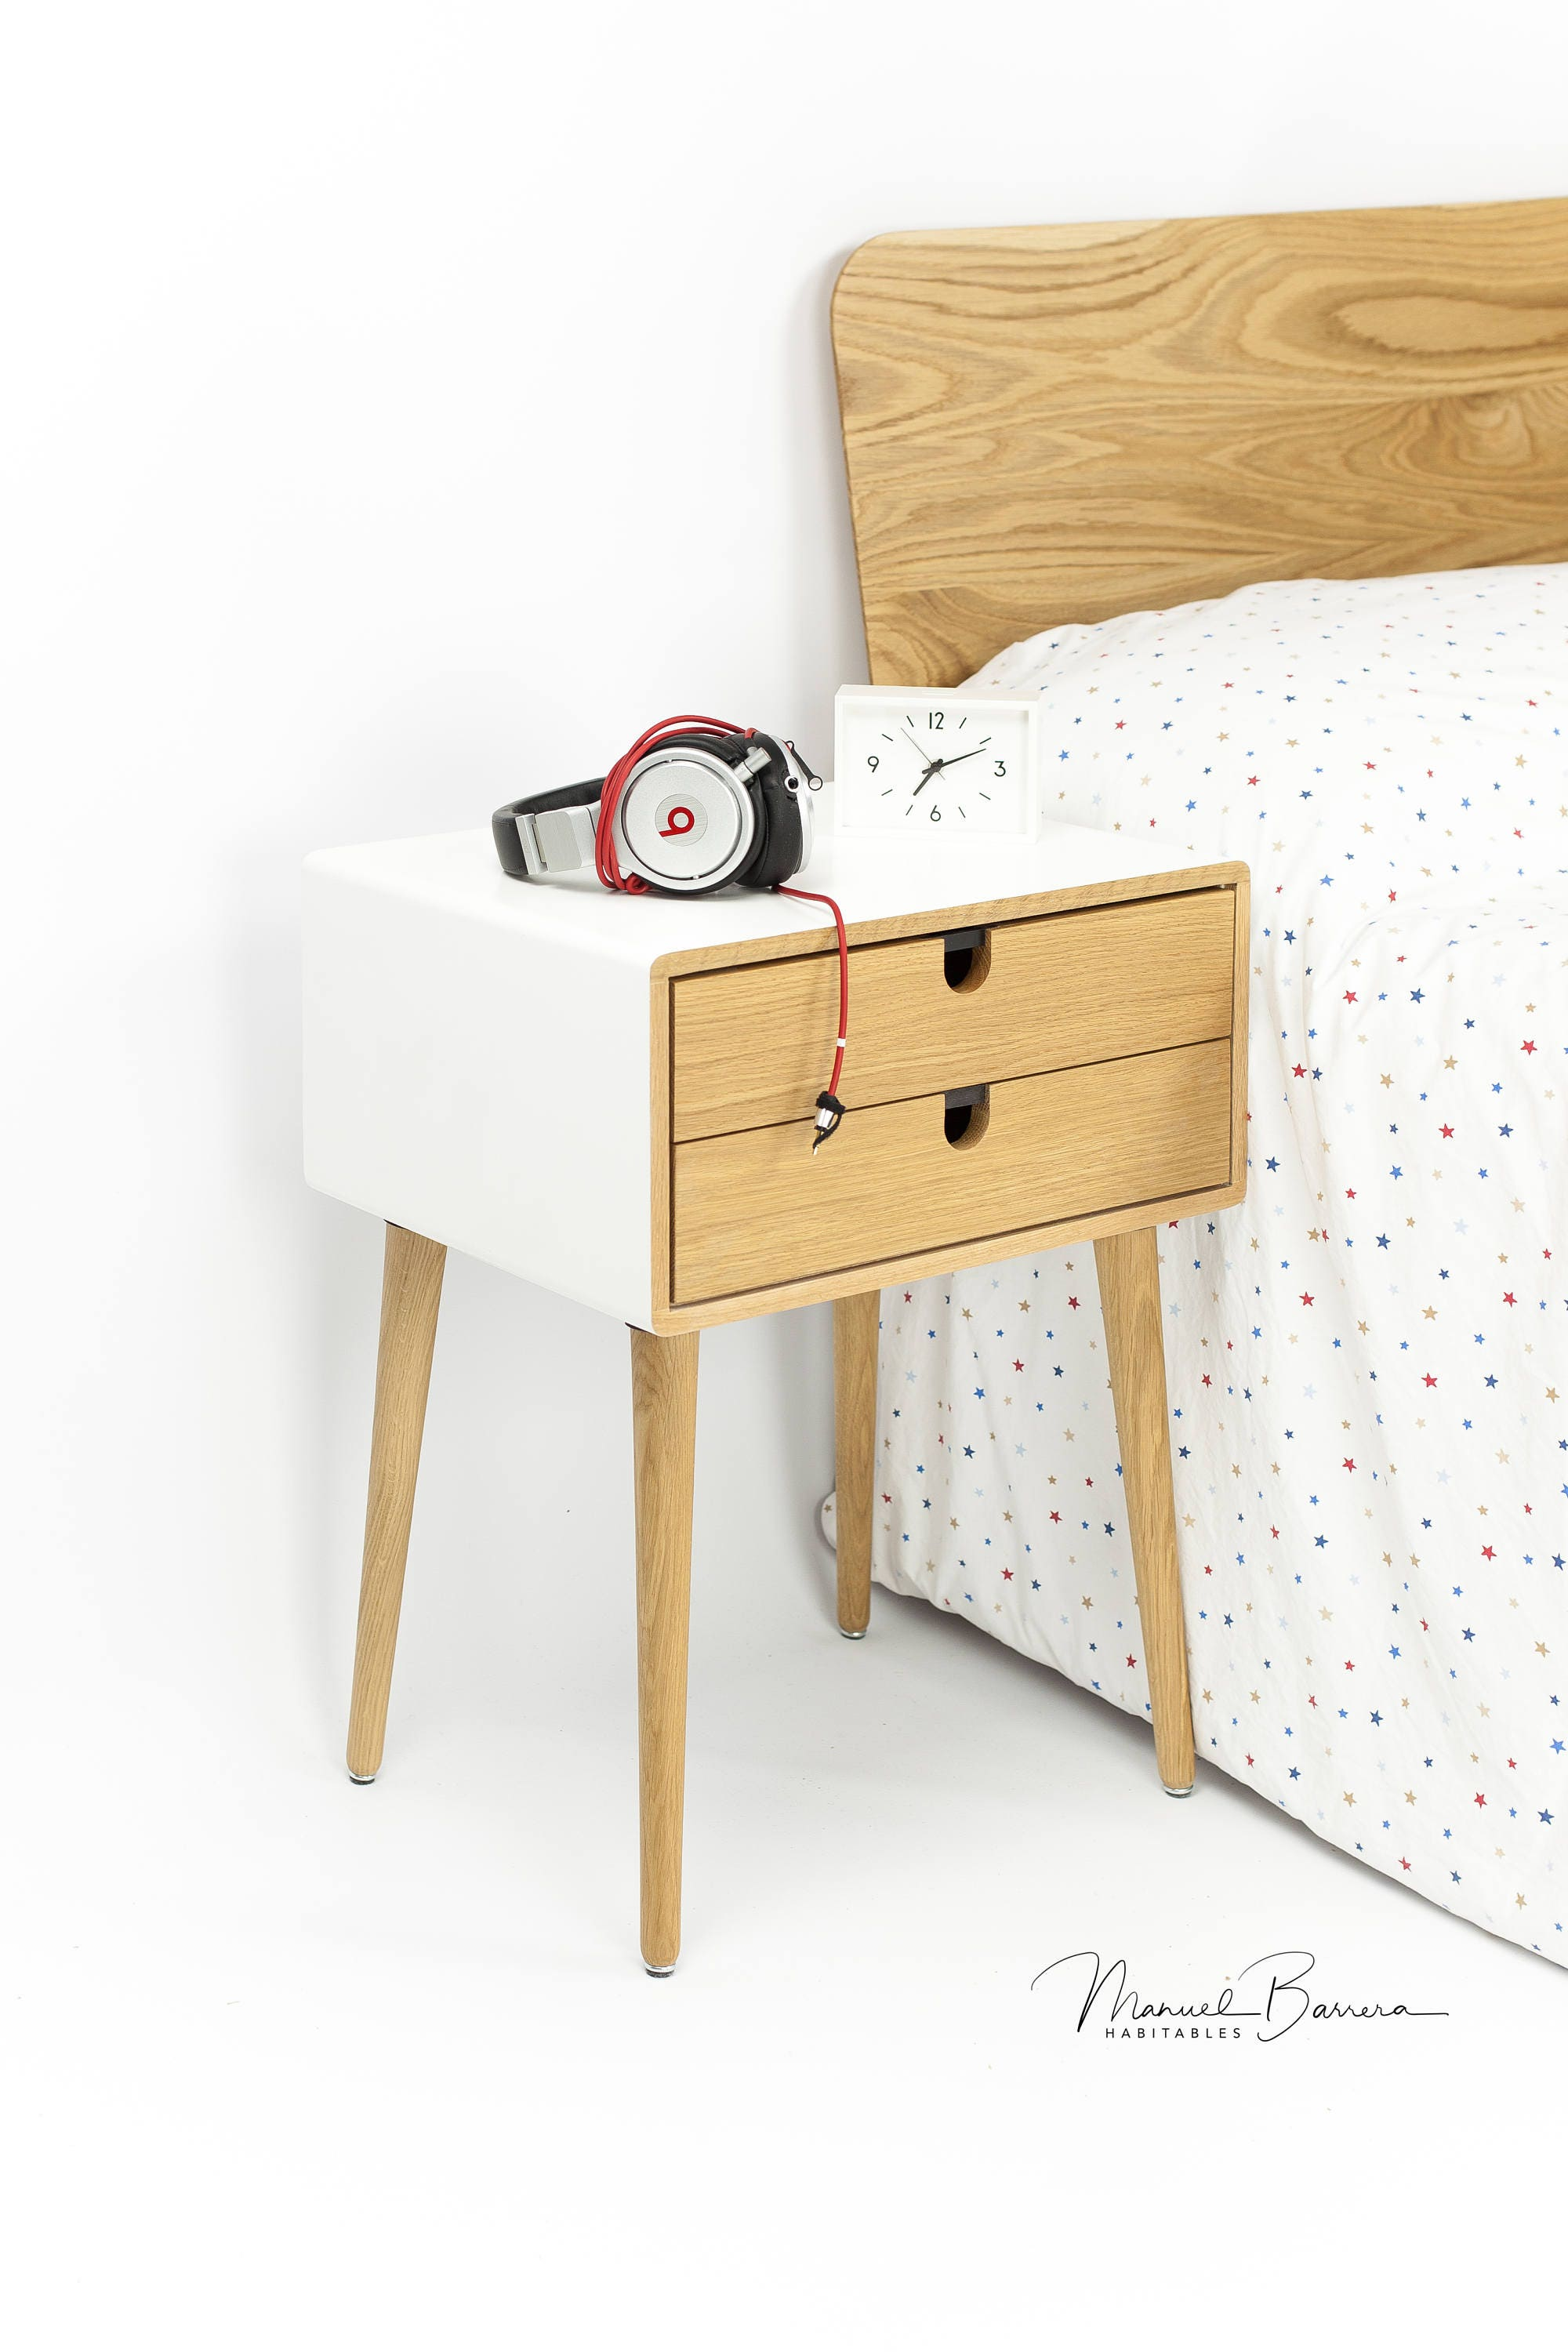 White Nightstand Bedside Table Scandinavian Mid Century Modern Retro Style With 1 Or 2 Drawers And Legs Made Of Oak Wood